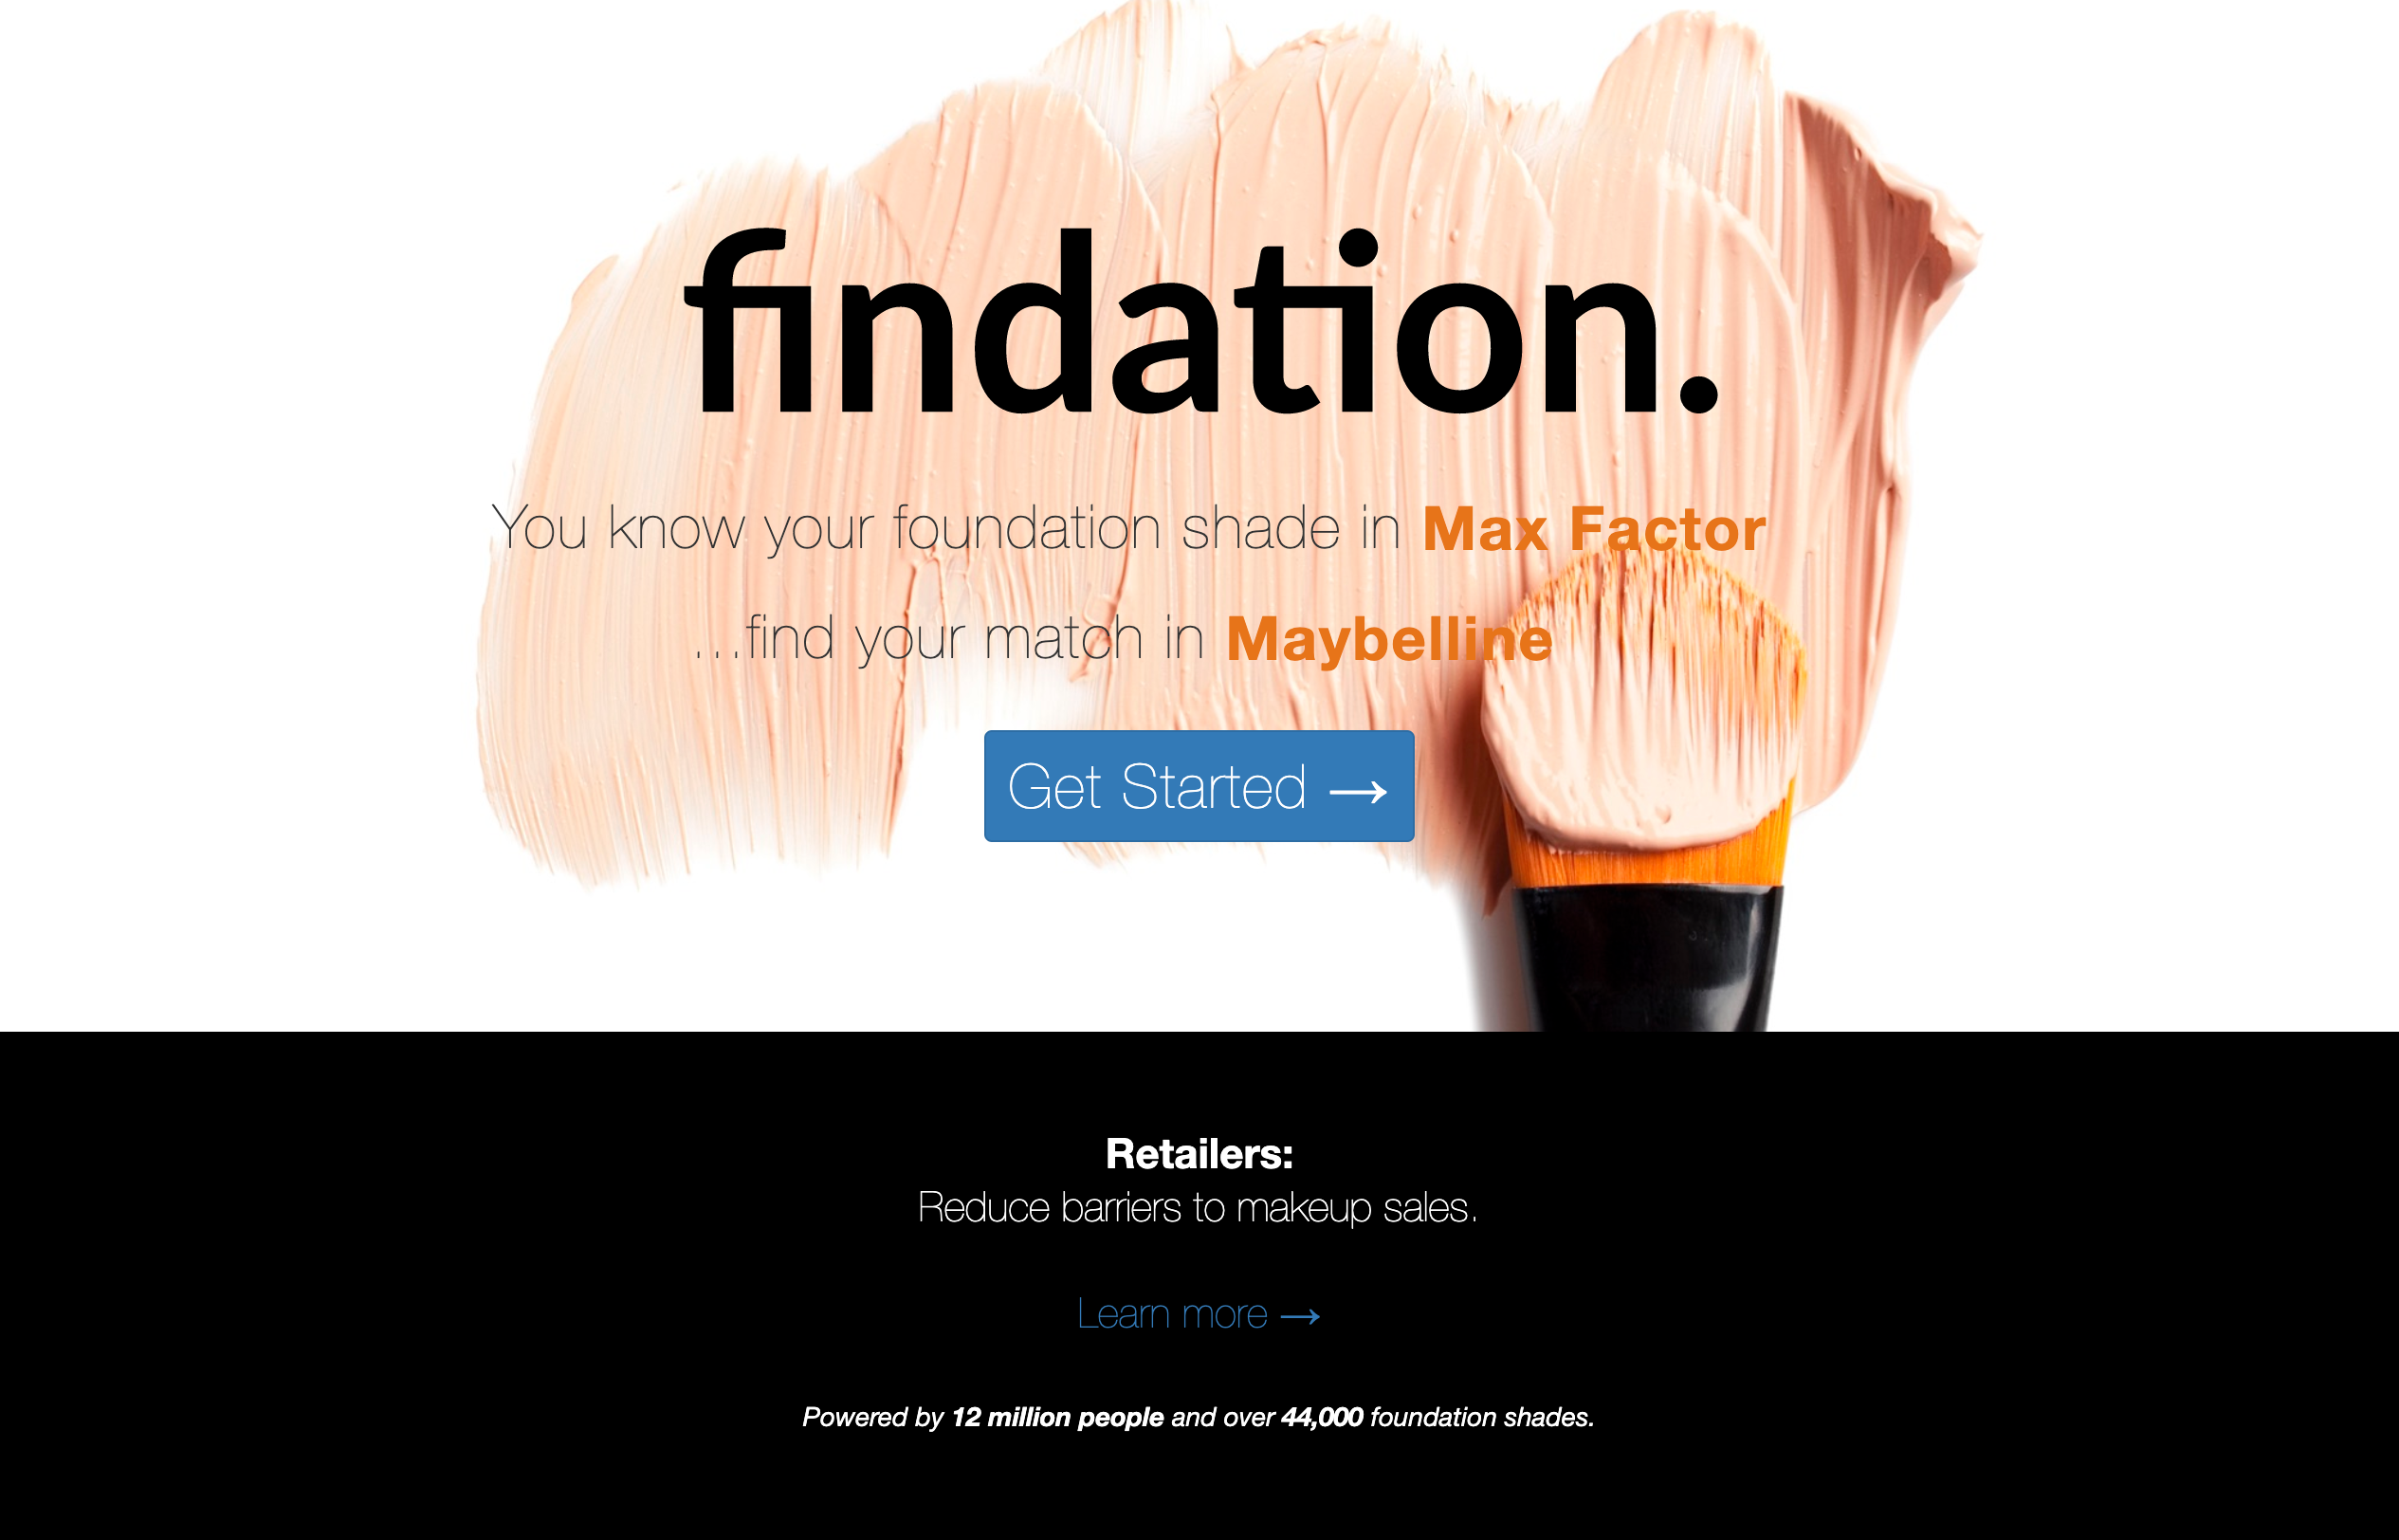 Findation helps you find your foundation match across